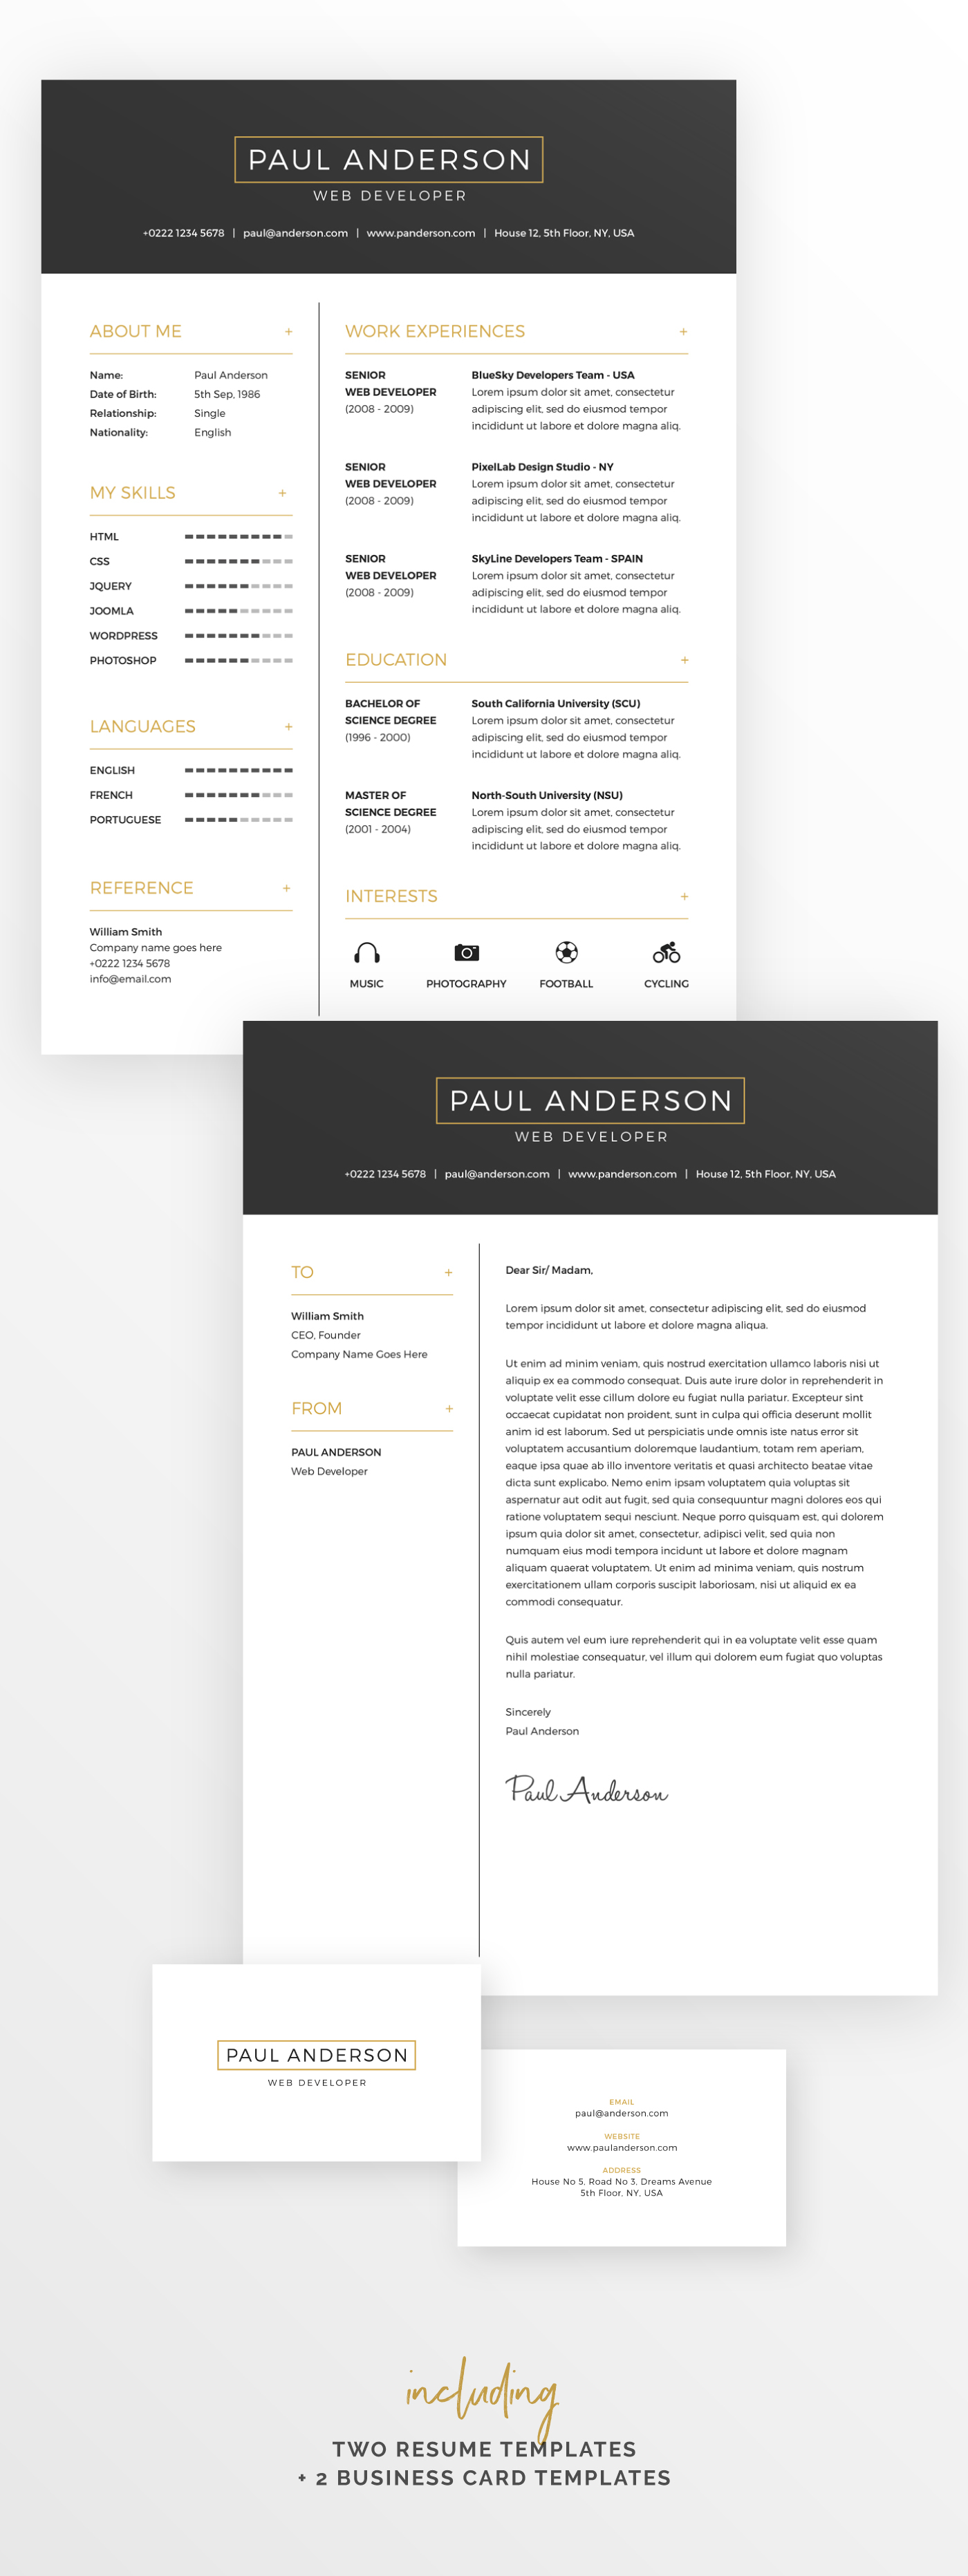 Free Resume   Cover Letter Template   Business Cards on Behance Download for Free